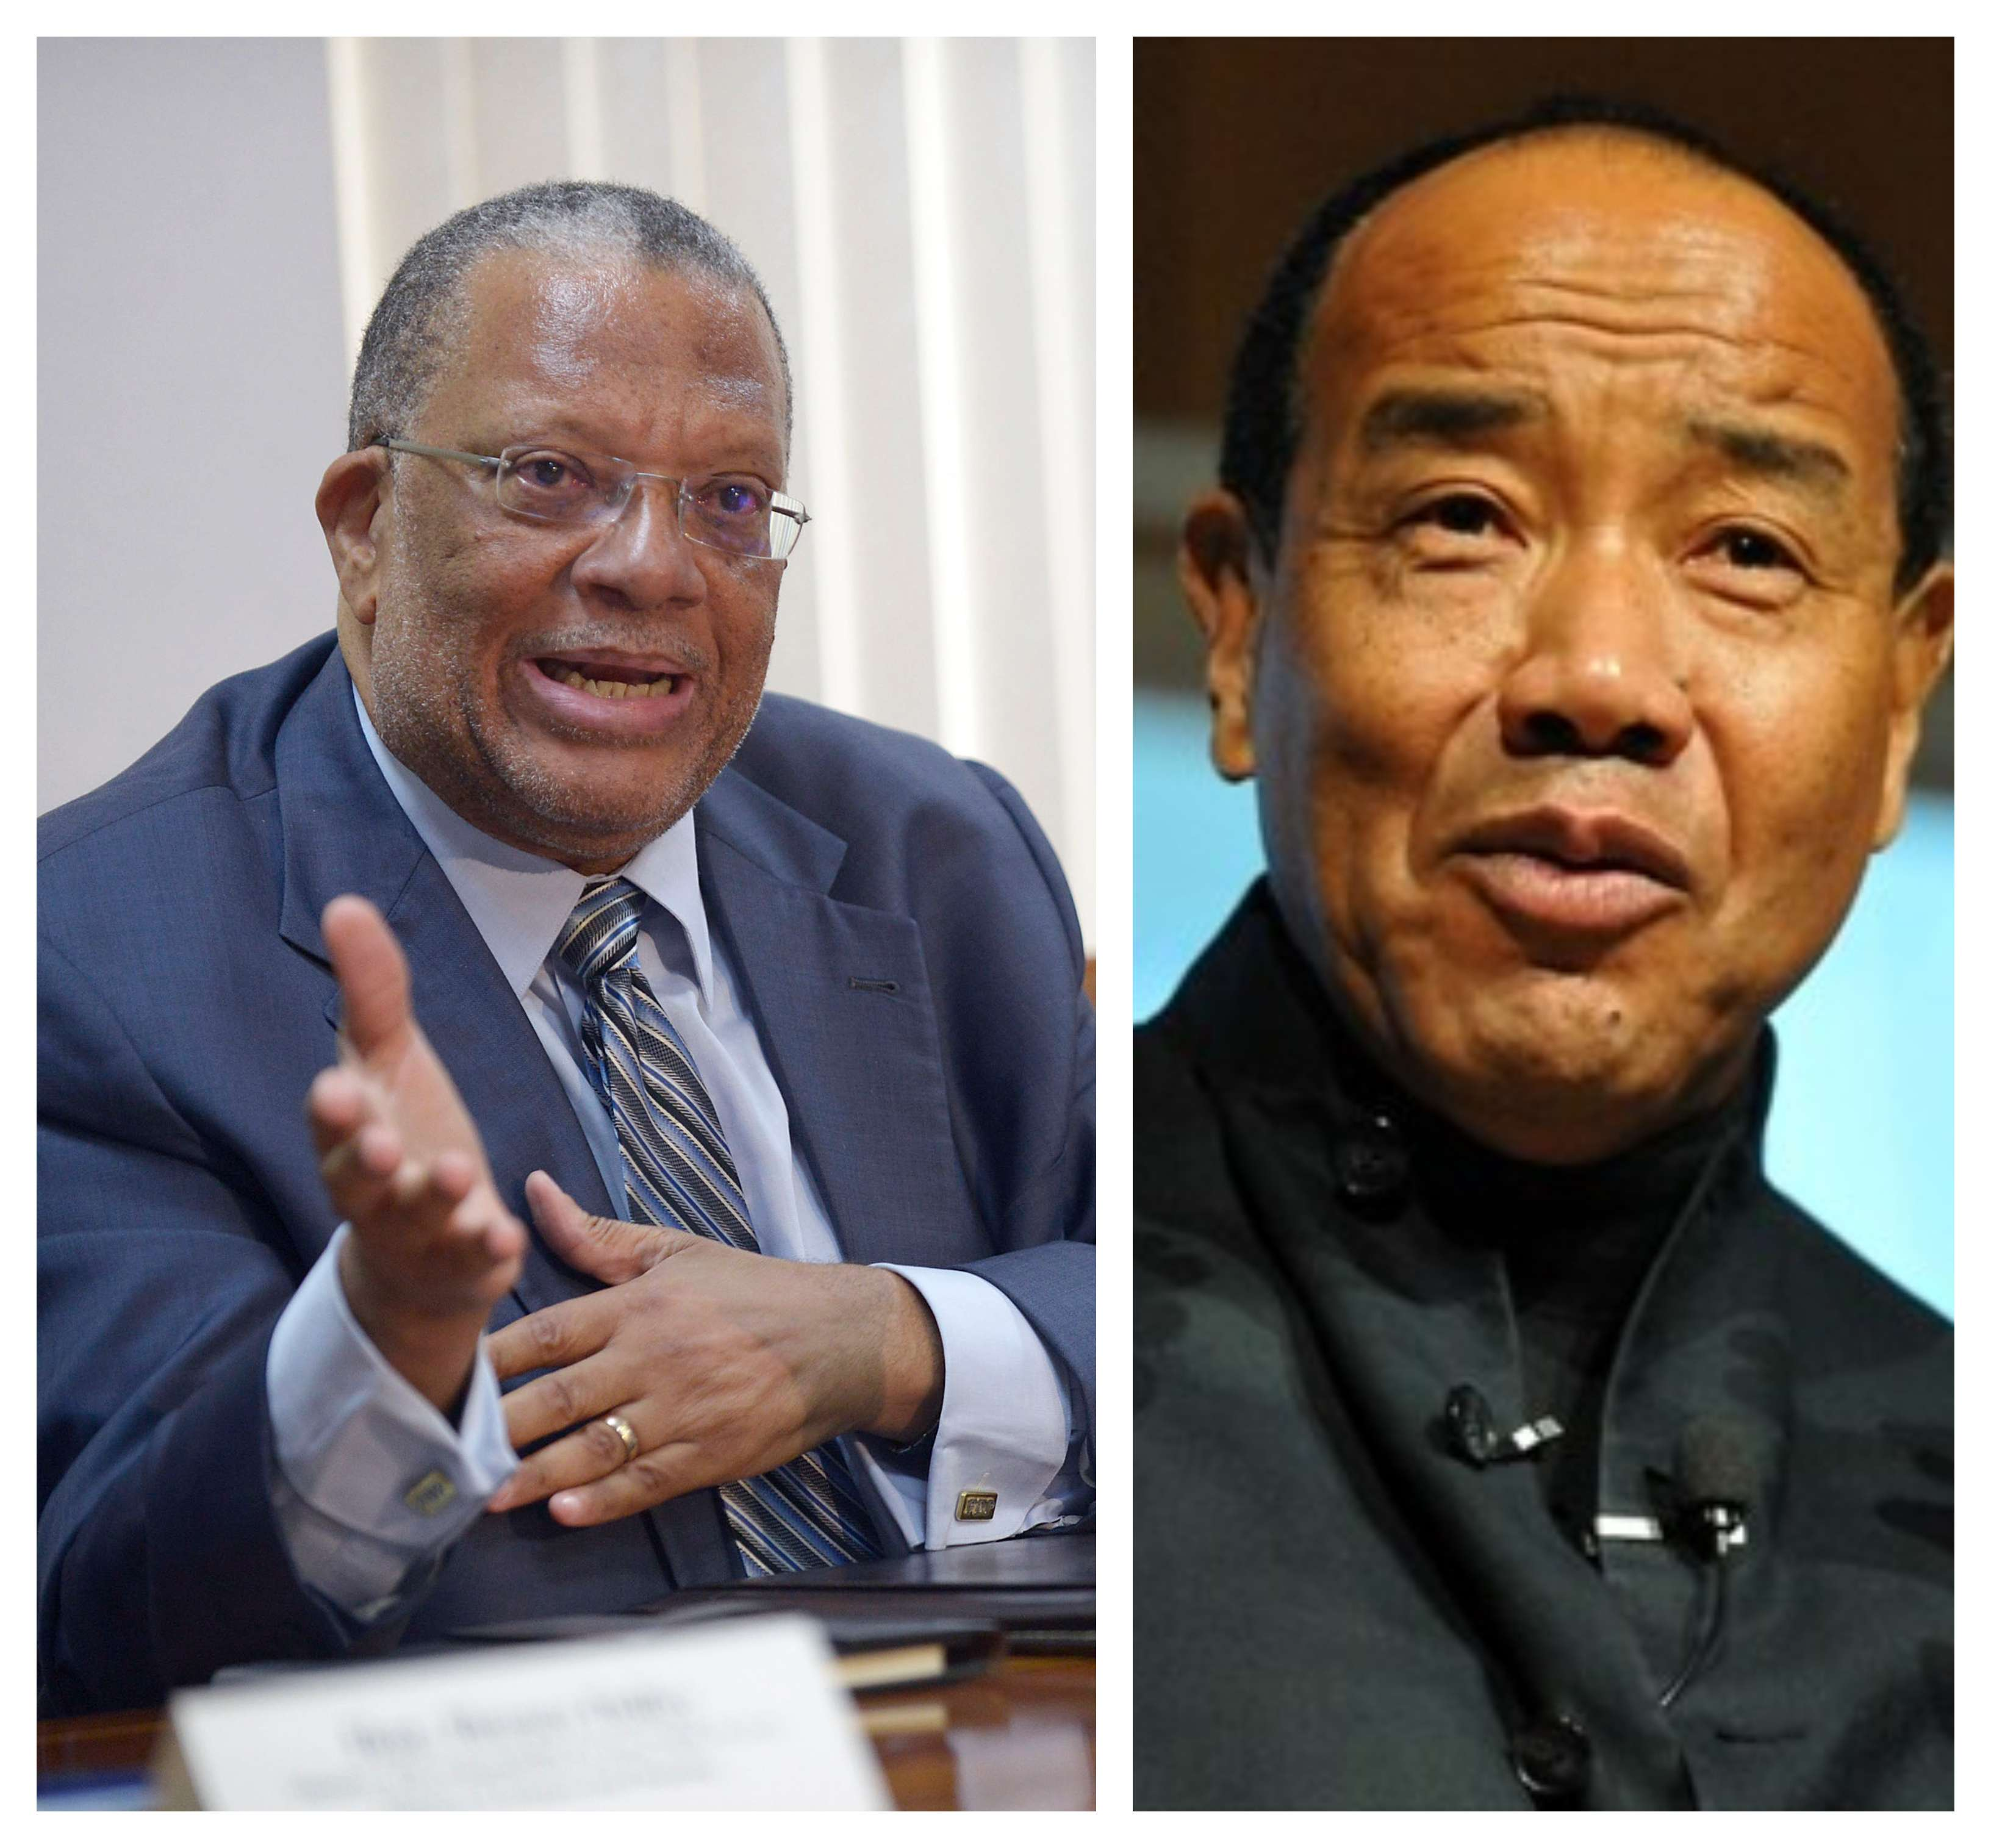 Phillips Rebuffs Michael Lee-Chin, Urges Him To Leave Civil Servants Alone